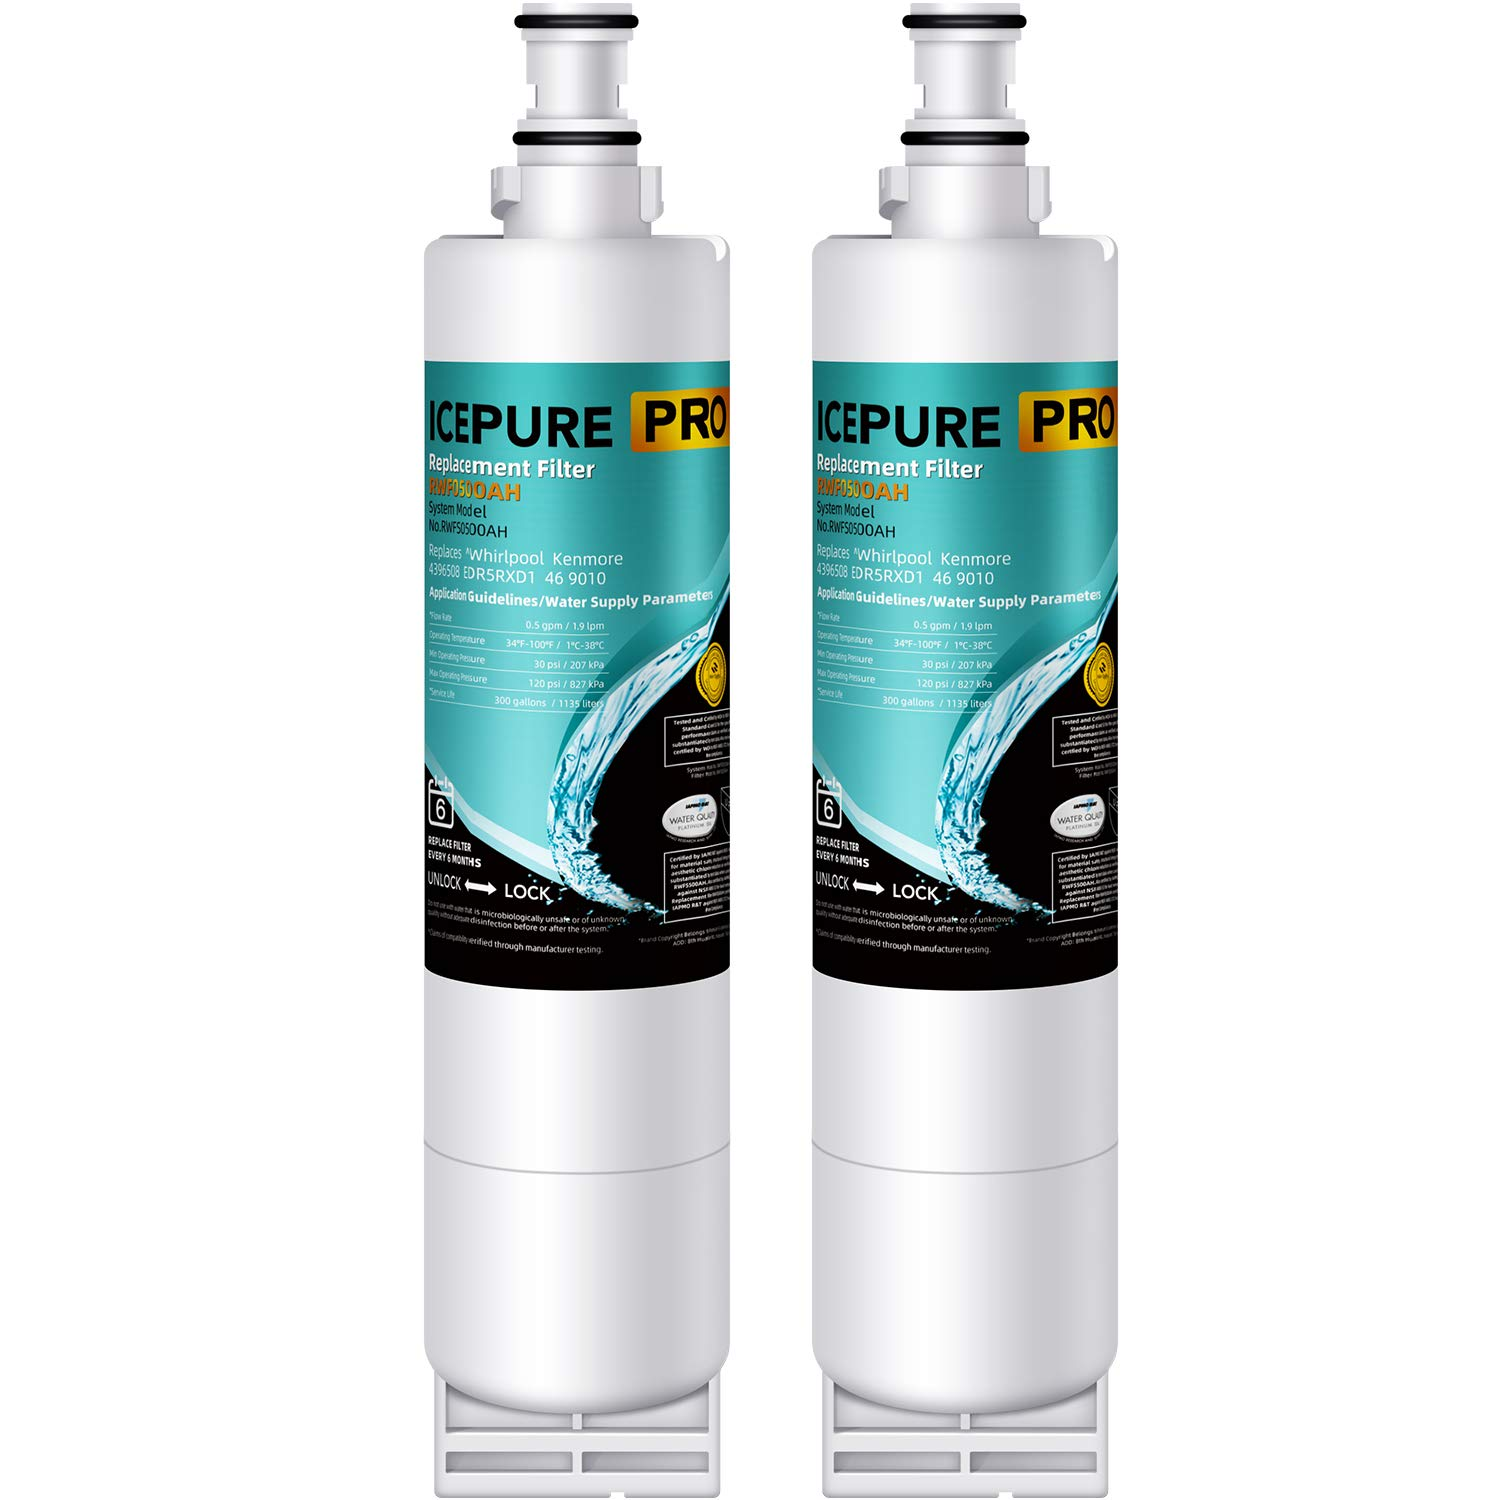 ICEPURE PRO 4396508 NSF53&42 Certified Premium Refrigerator Replacement Water Filter compatible with Whirlpool PUR 4396508 4396510 for Kitchenaid Maytag Whirlpool Side By Side Refrigerator (2 pack) by ICEPURE PRO